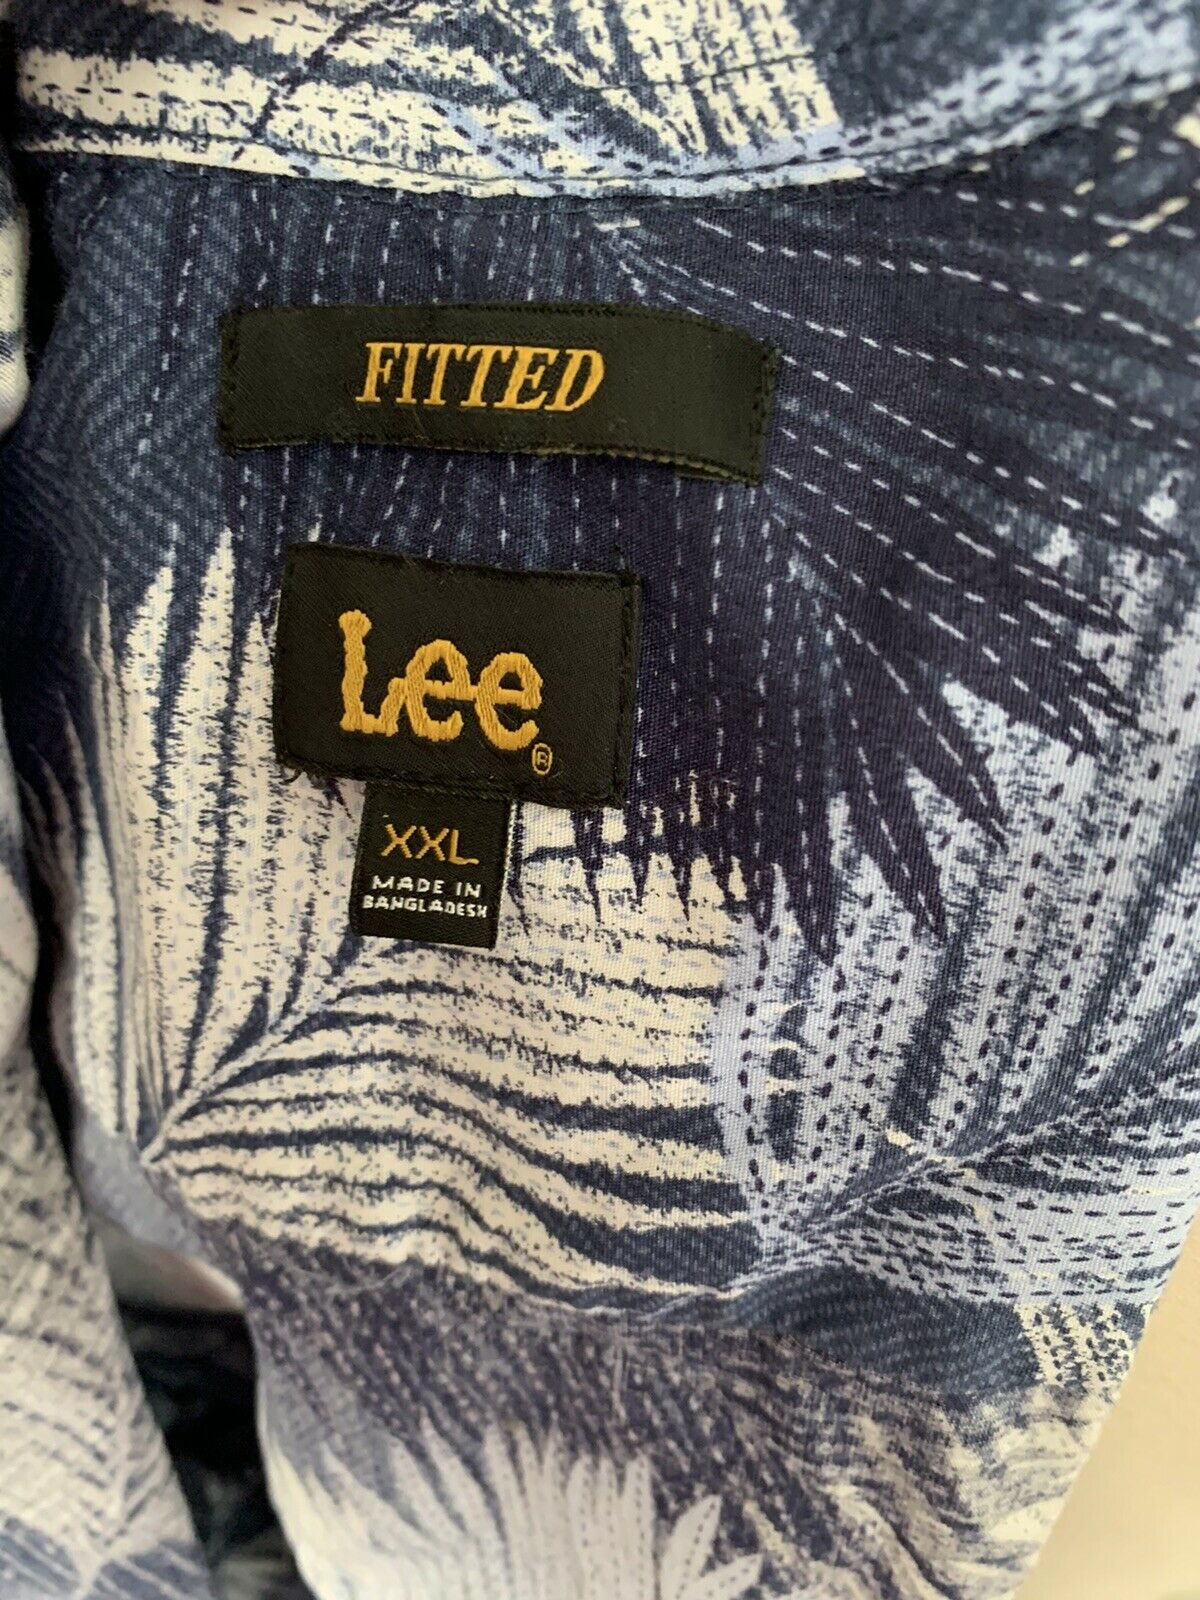 LEE Men's Fitted Button Down Shirt - image 3